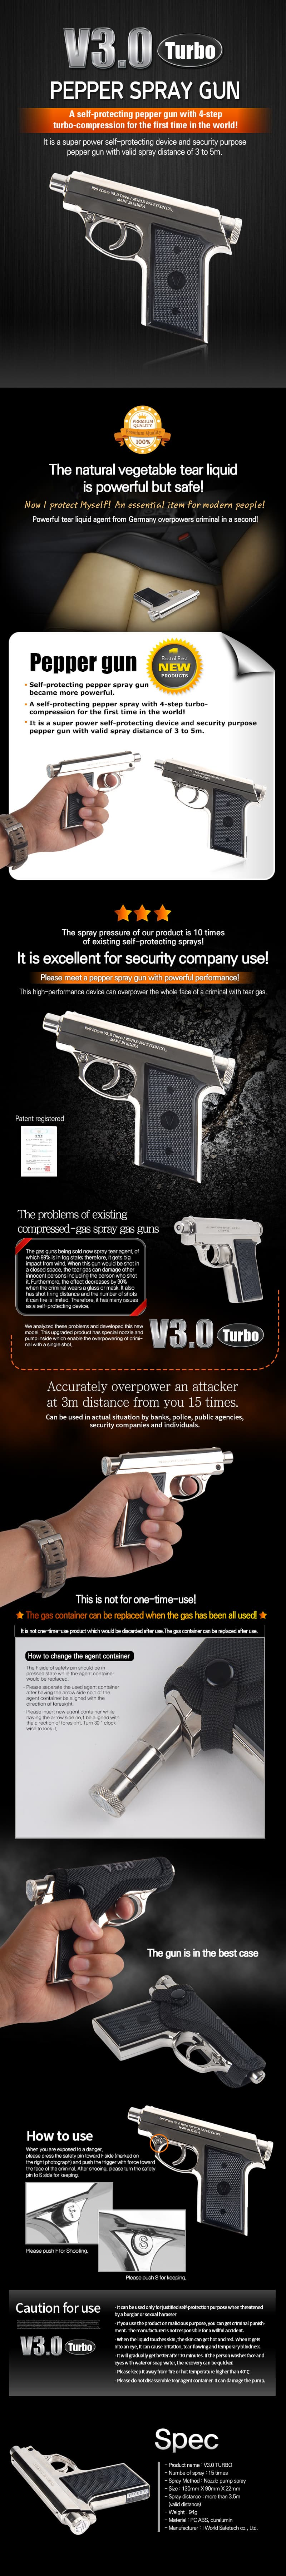 V3-0 Turbo -pepper spray gun-